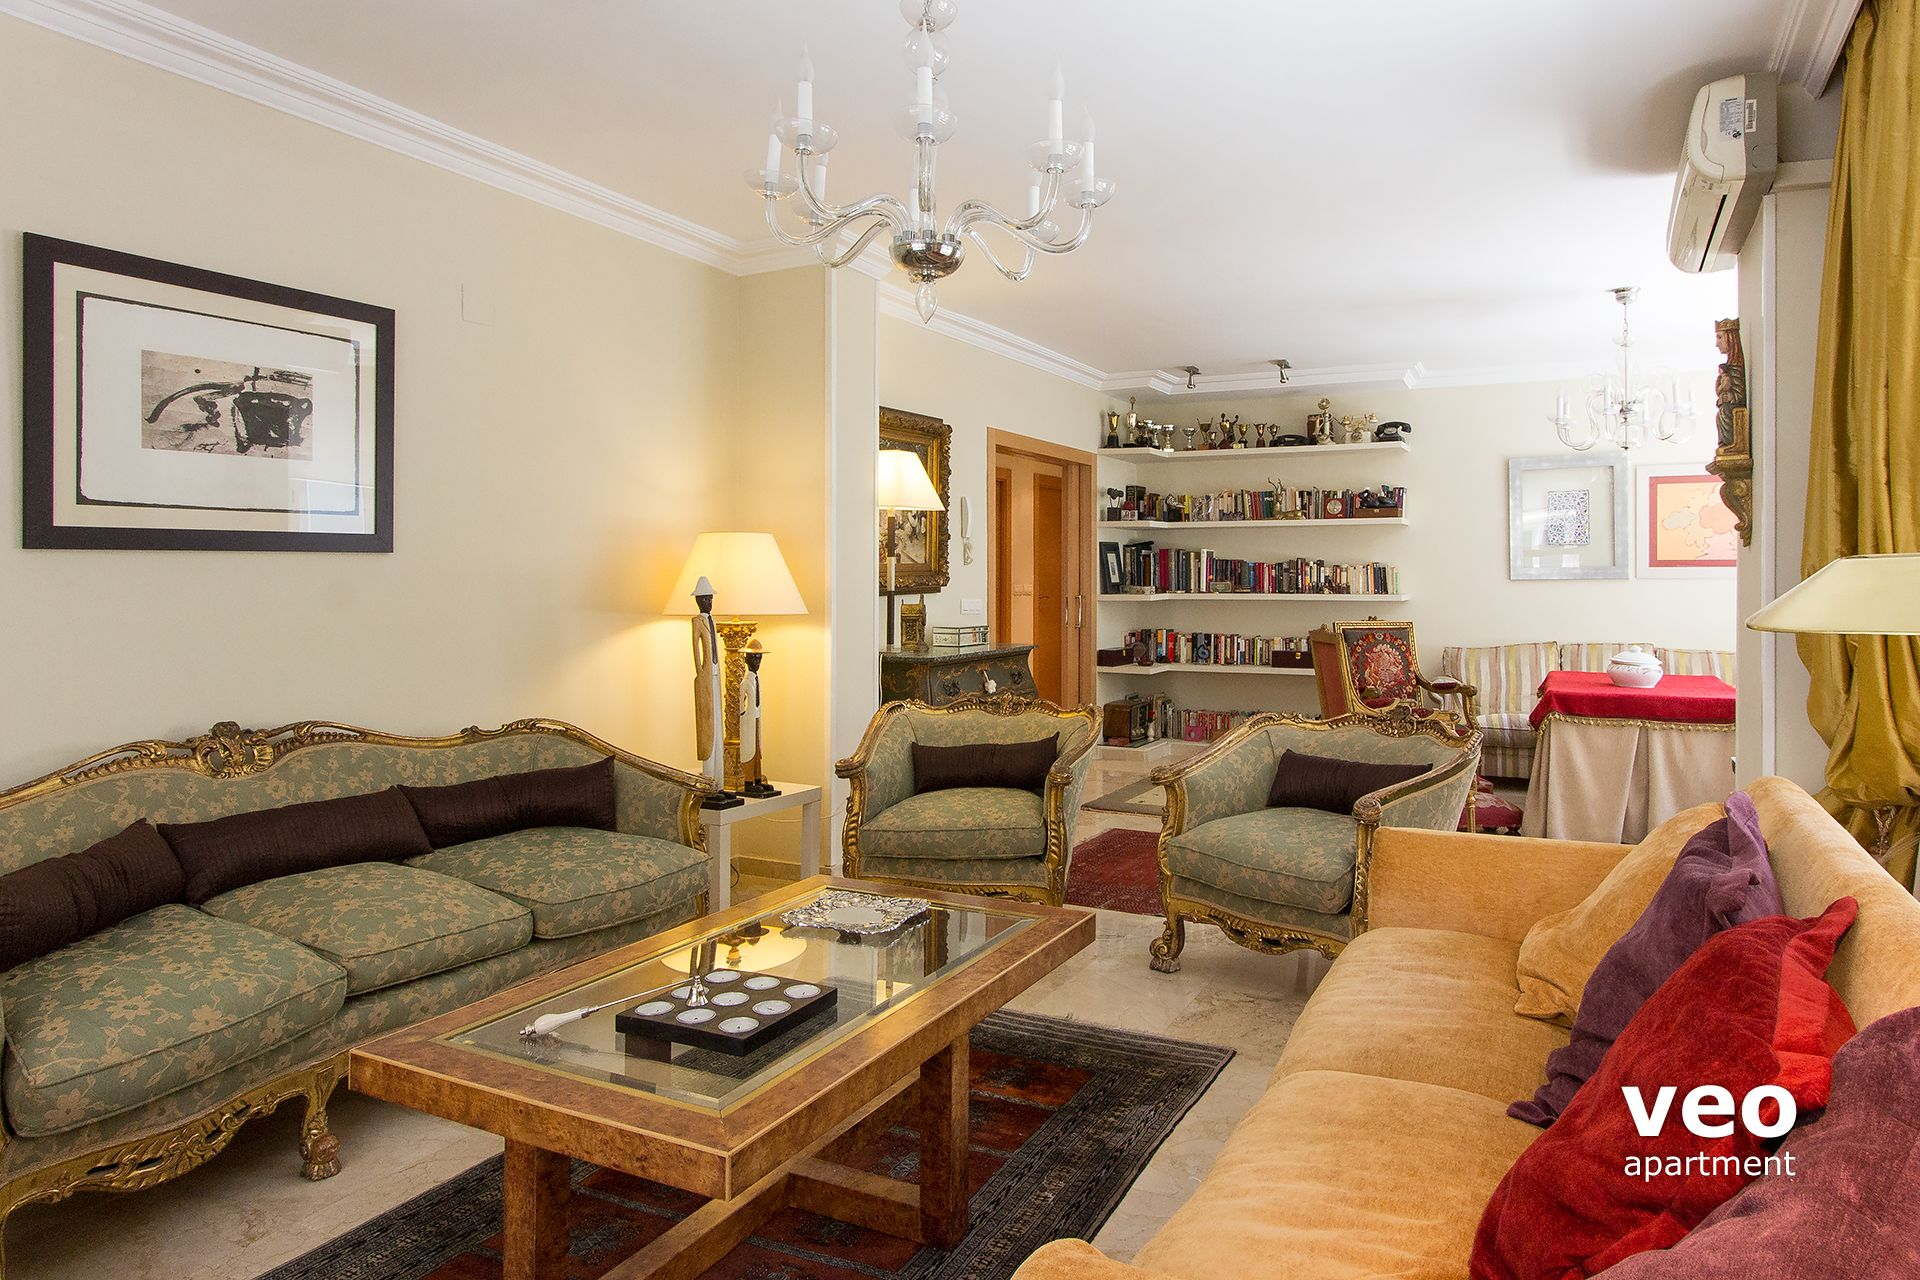 Superb Granada Apartment   The Living Area Is Decorated With Antiques, Wood  Furniture And Original Artwork ...